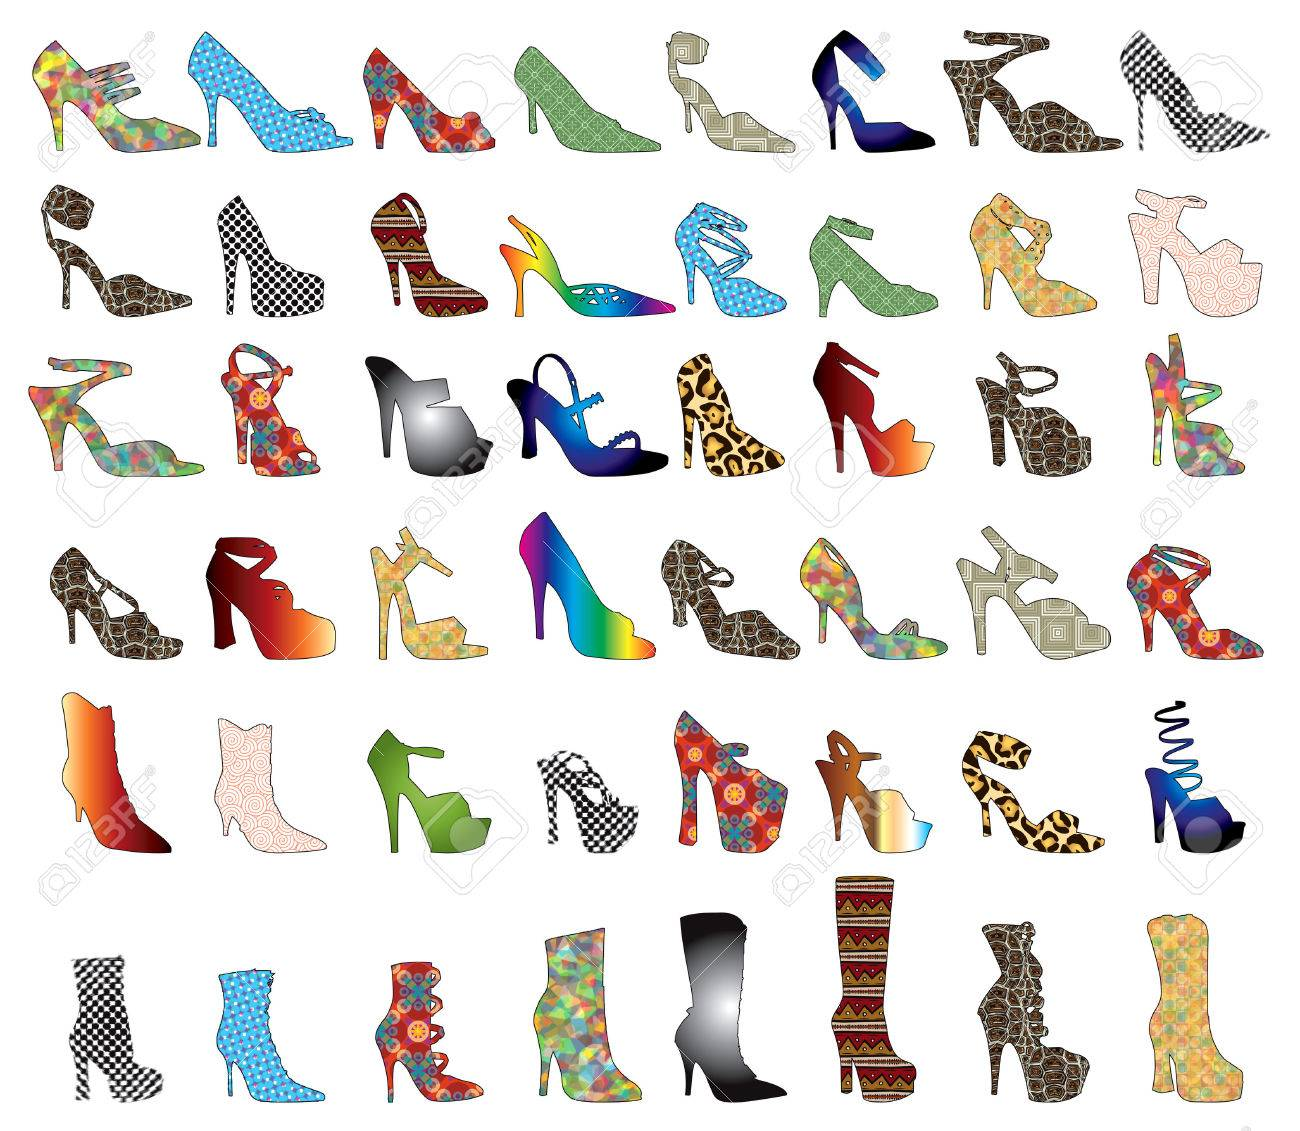 48 patterned shoes. Shoe Silhouettes 3. Stock Vector - 6544745